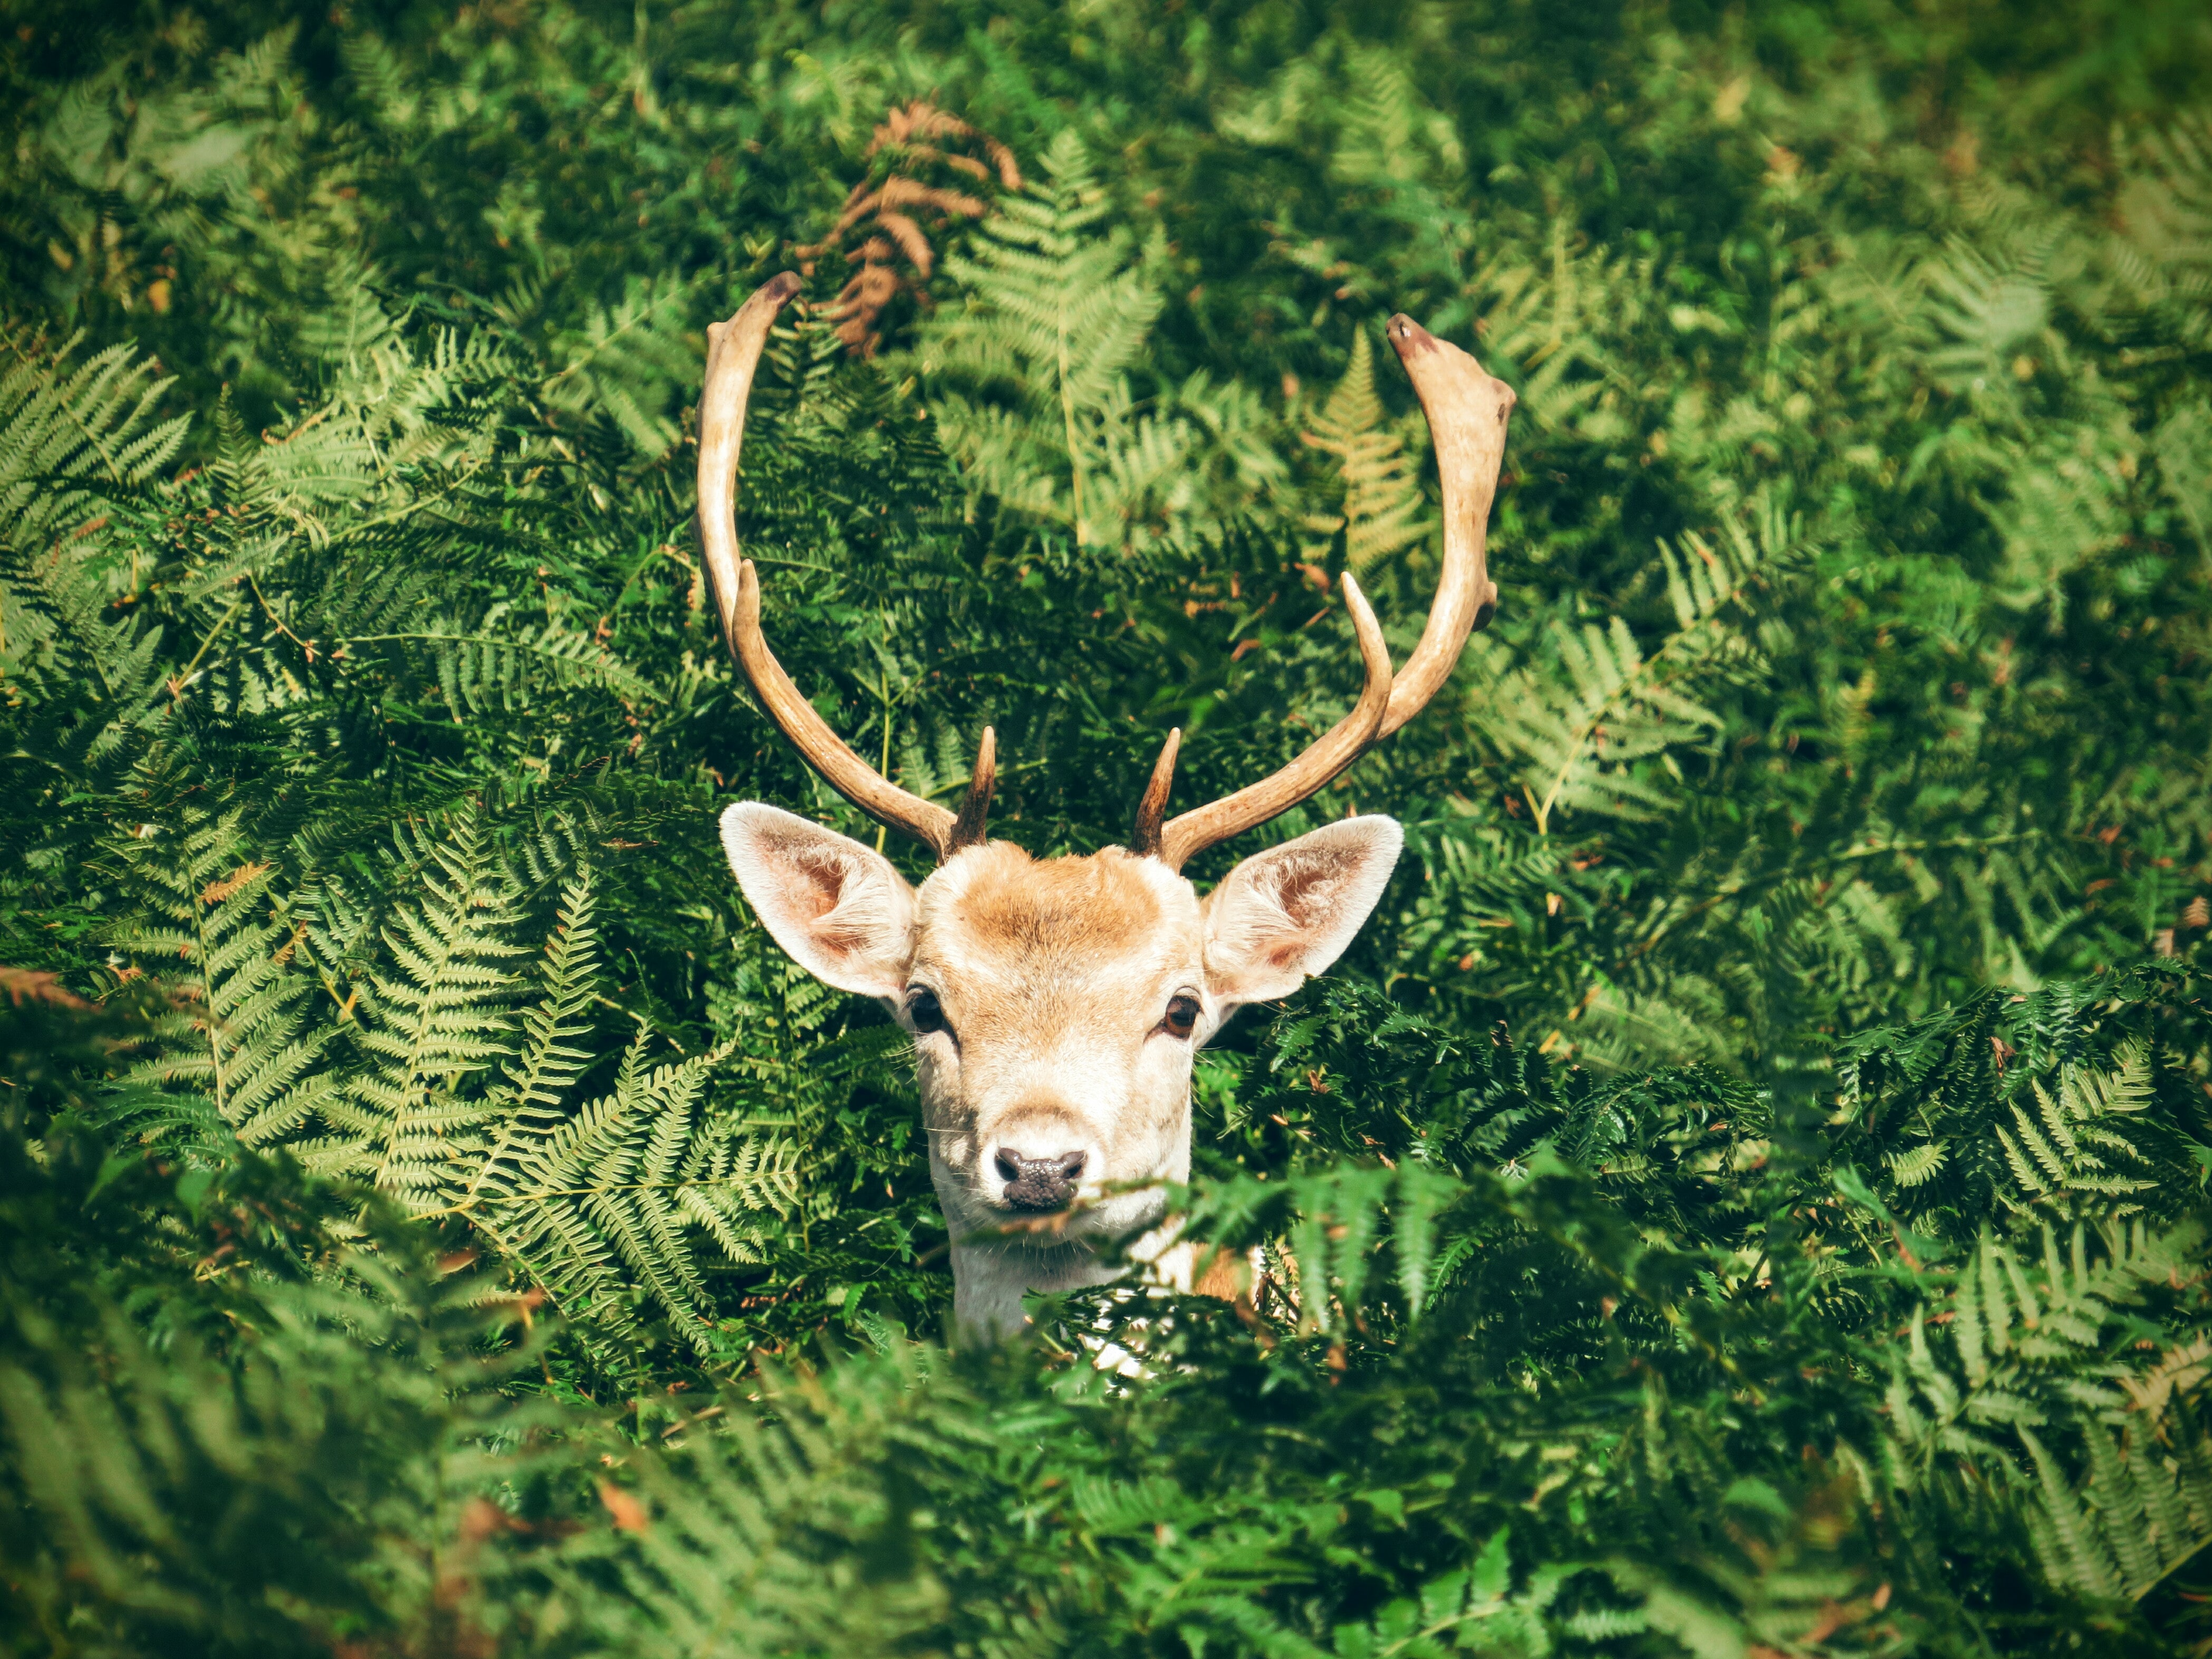 brown and white deer surrounded by green plants